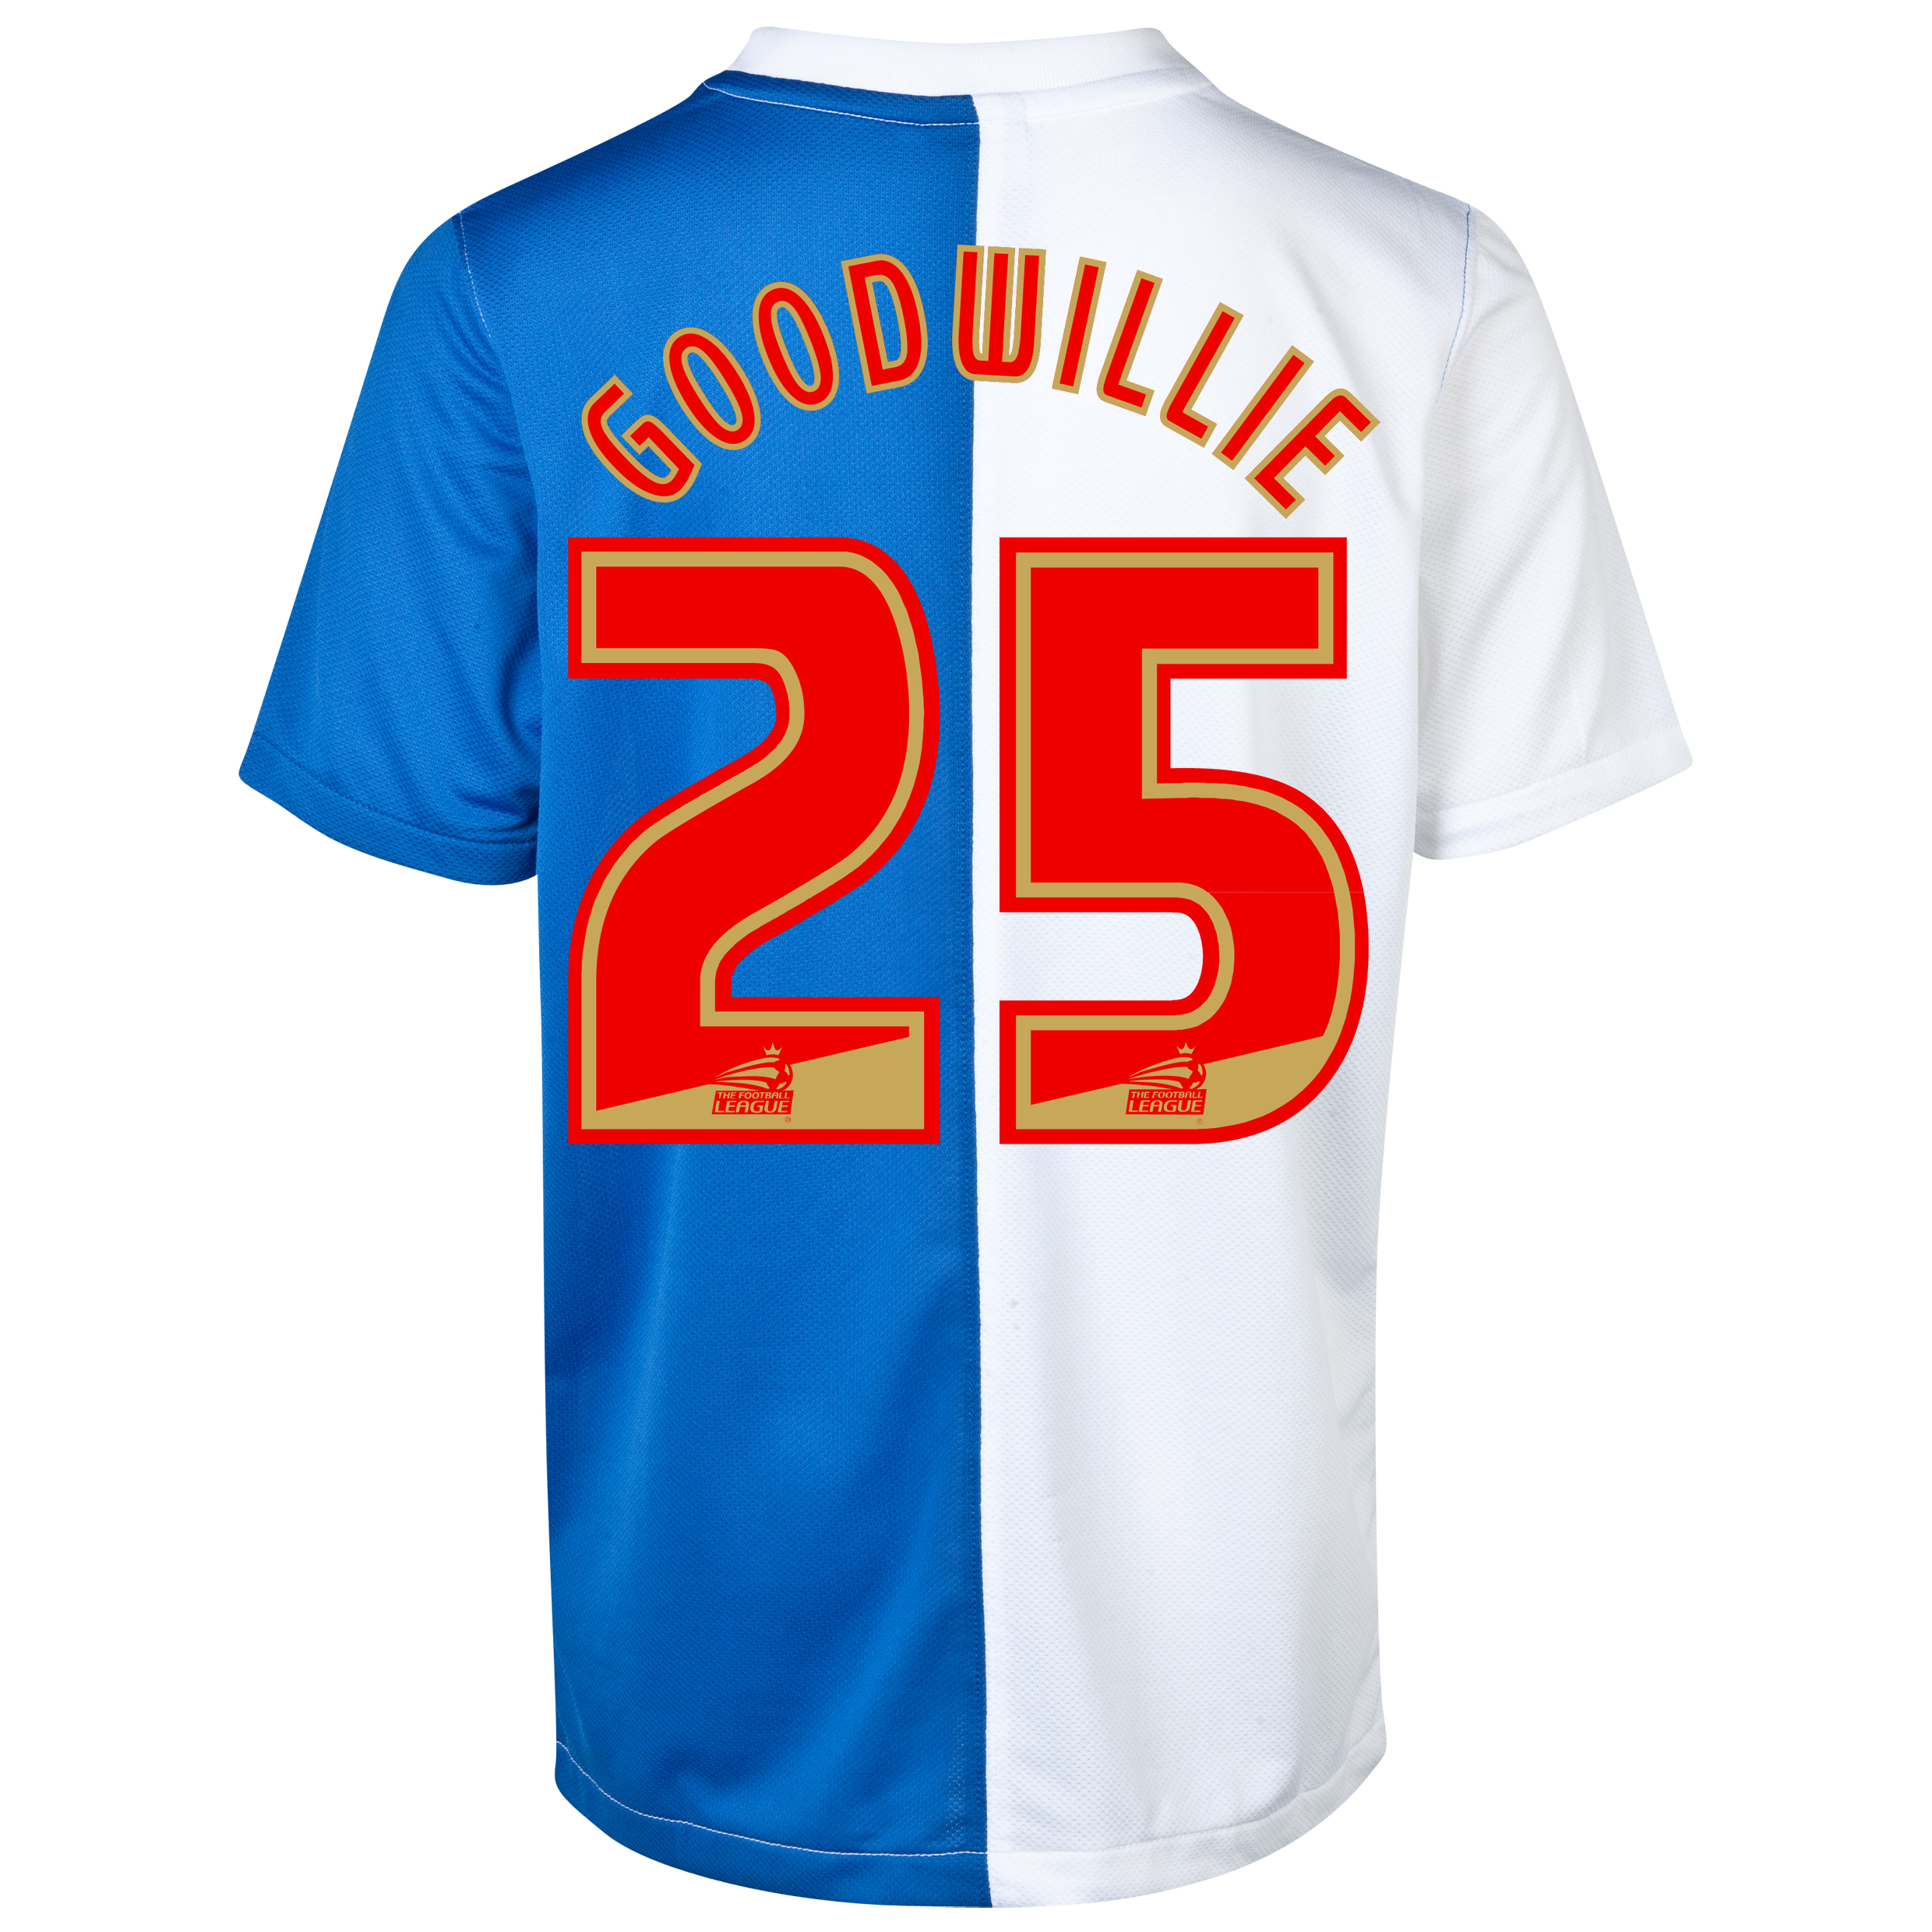 Blackburn Rovers Home Shirt 2013/14 - Kids with Goodwillie 25 printing